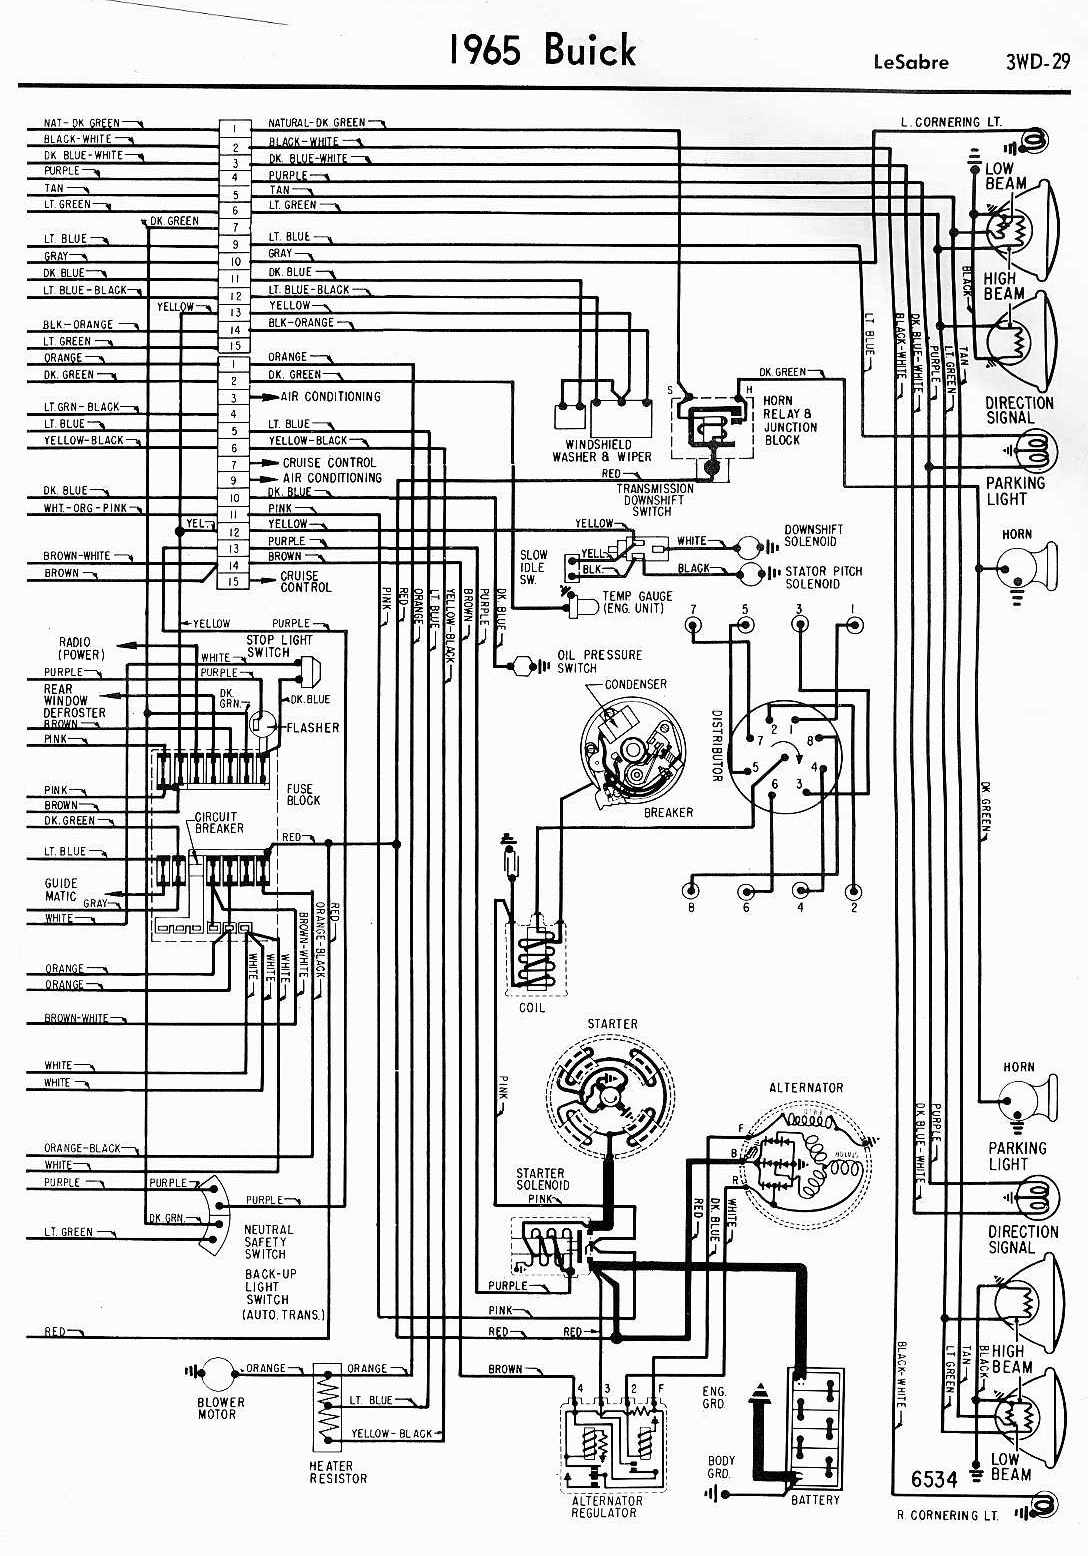 BUICK - Car PDF Manual, Wiring Diagram & Fault Codes DTCautomotive-manuals.net